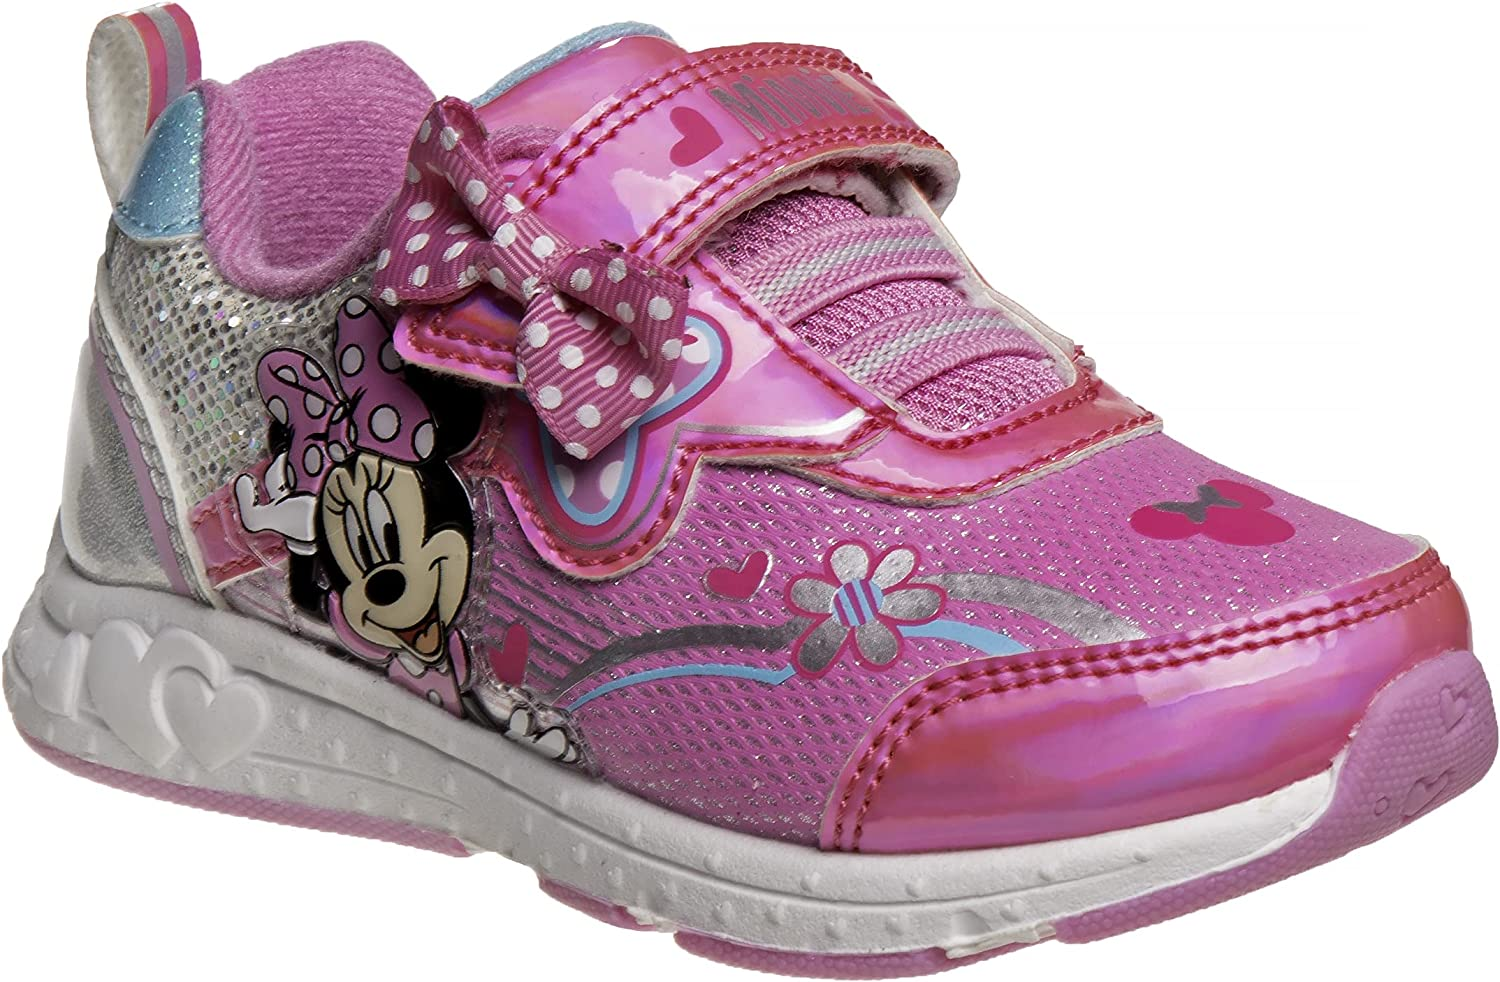 Disney Minnie Mouse Girls Shoes | Lightweight Sneakers | Toddler and Little Kid Casual Running Shoes